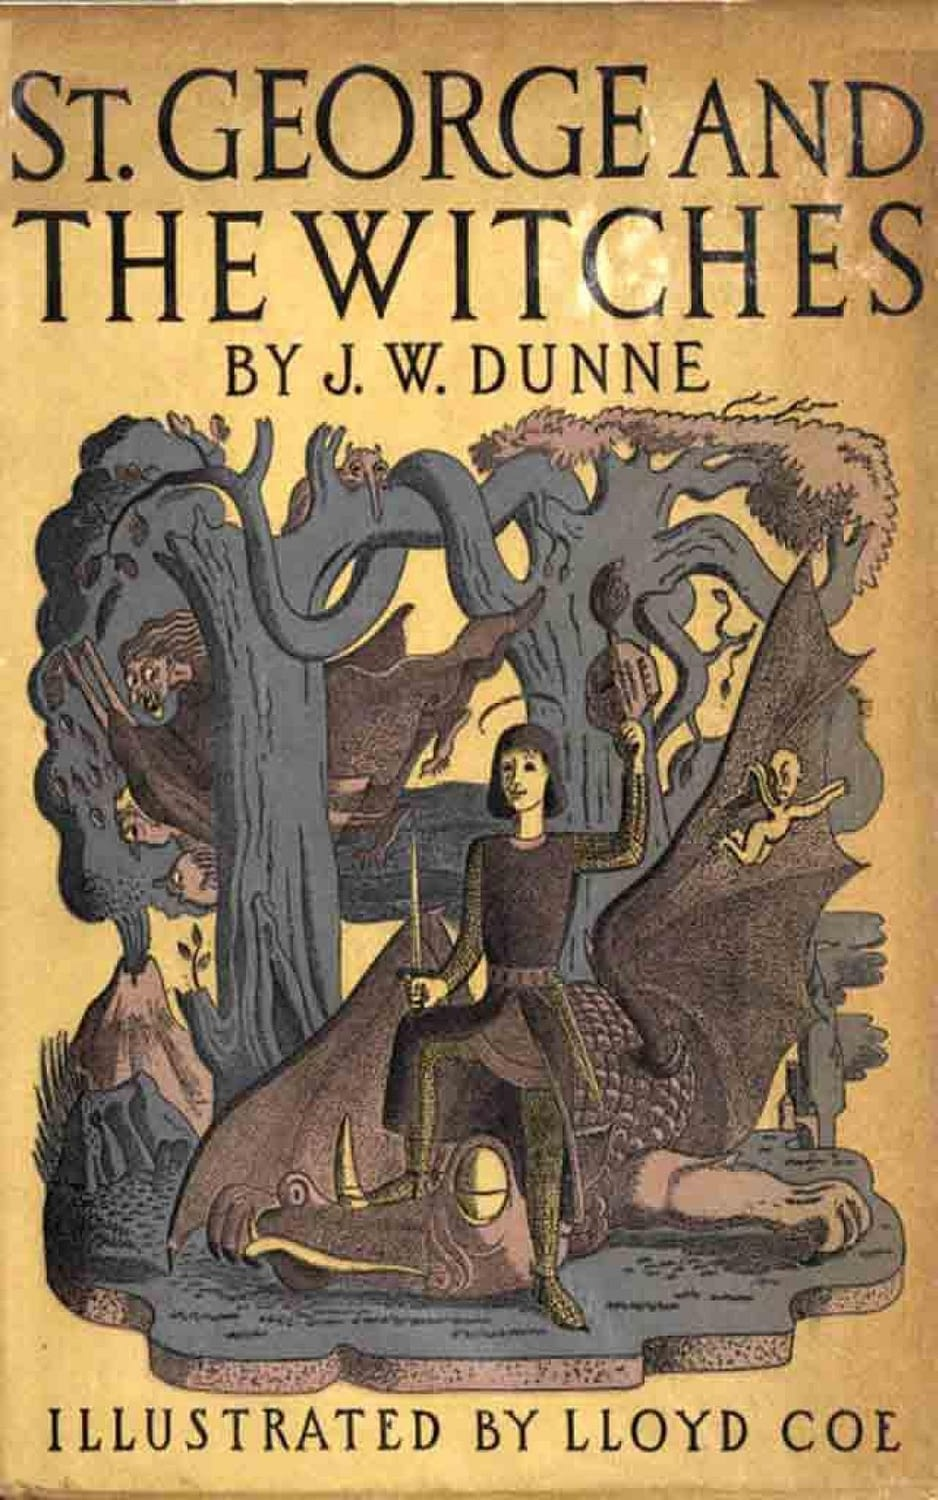 Saint George and the Witch of Windermere